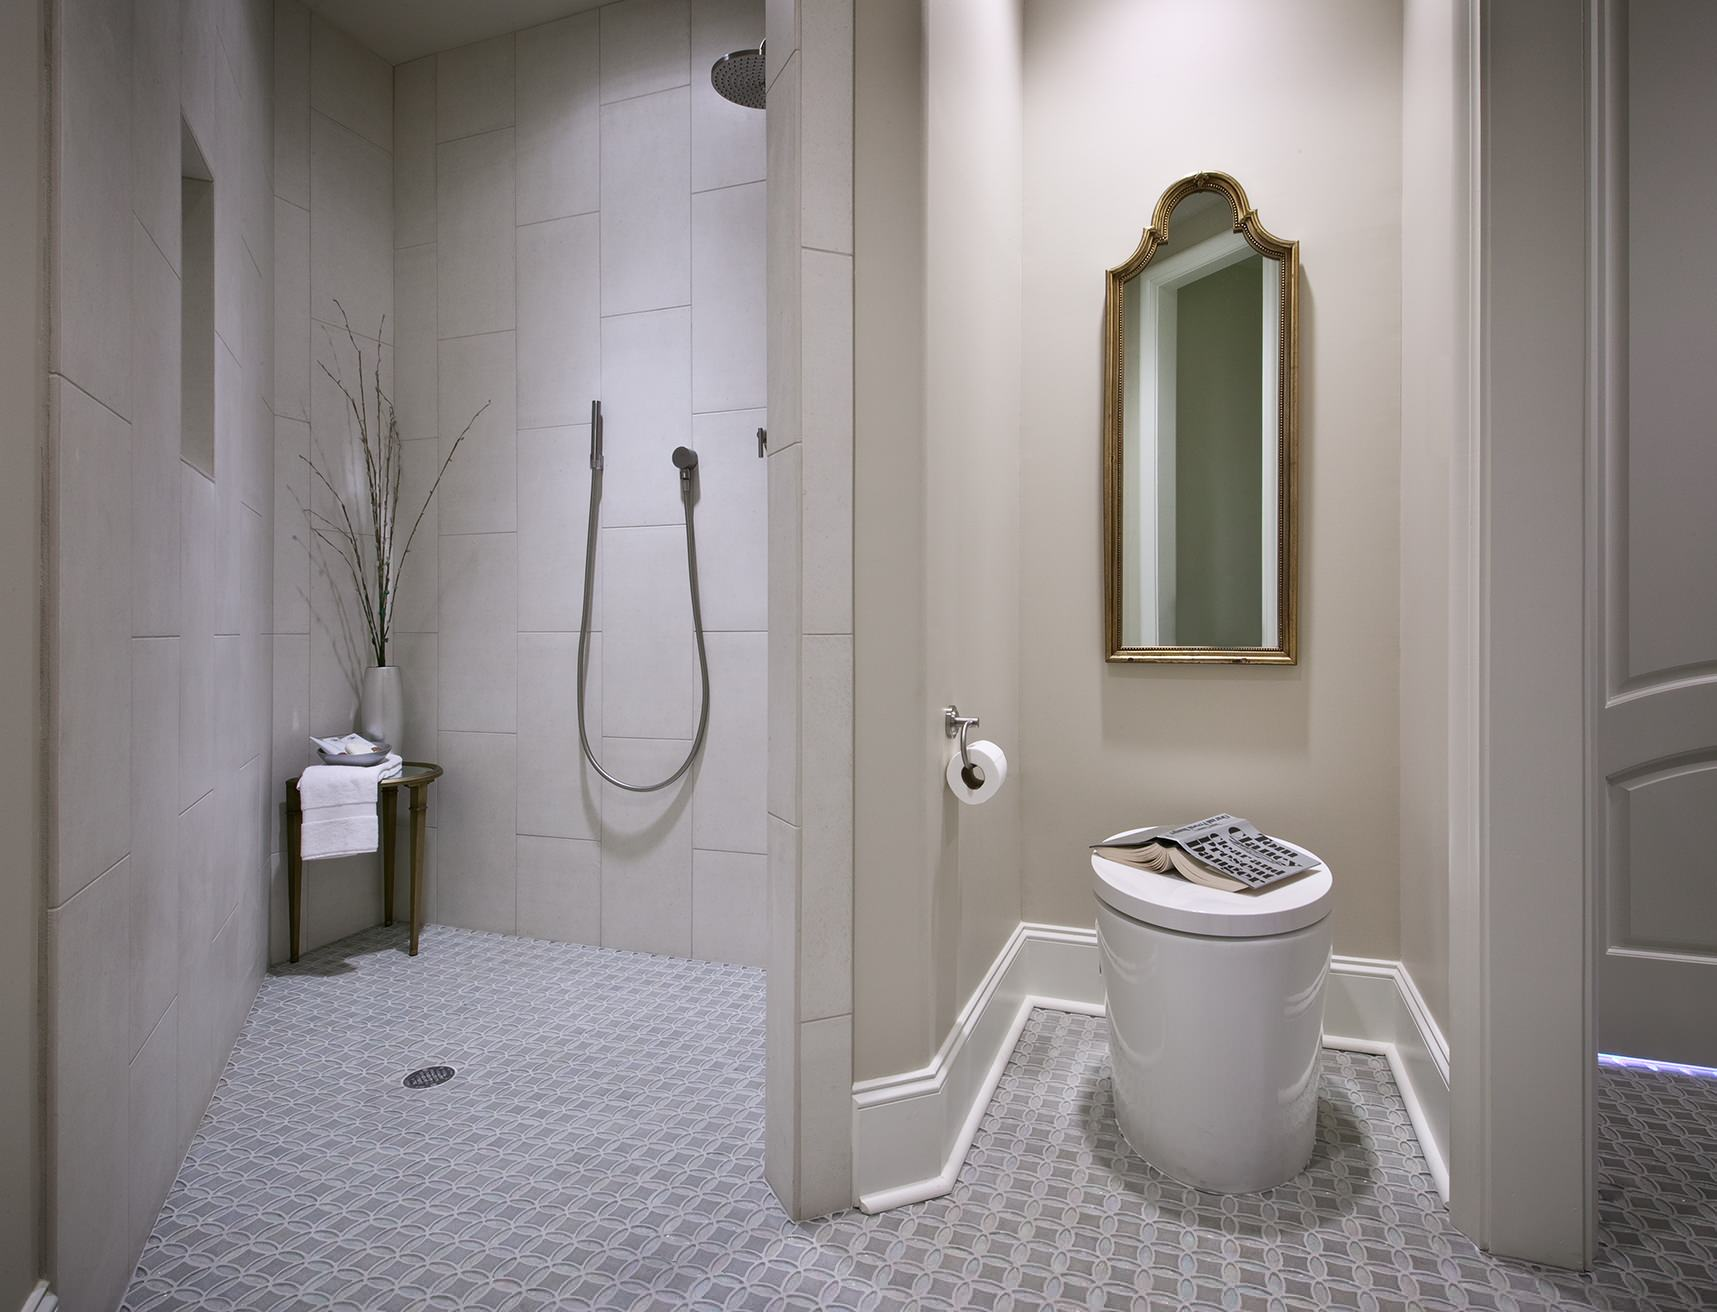 Handiced Accessible Shower Houzz